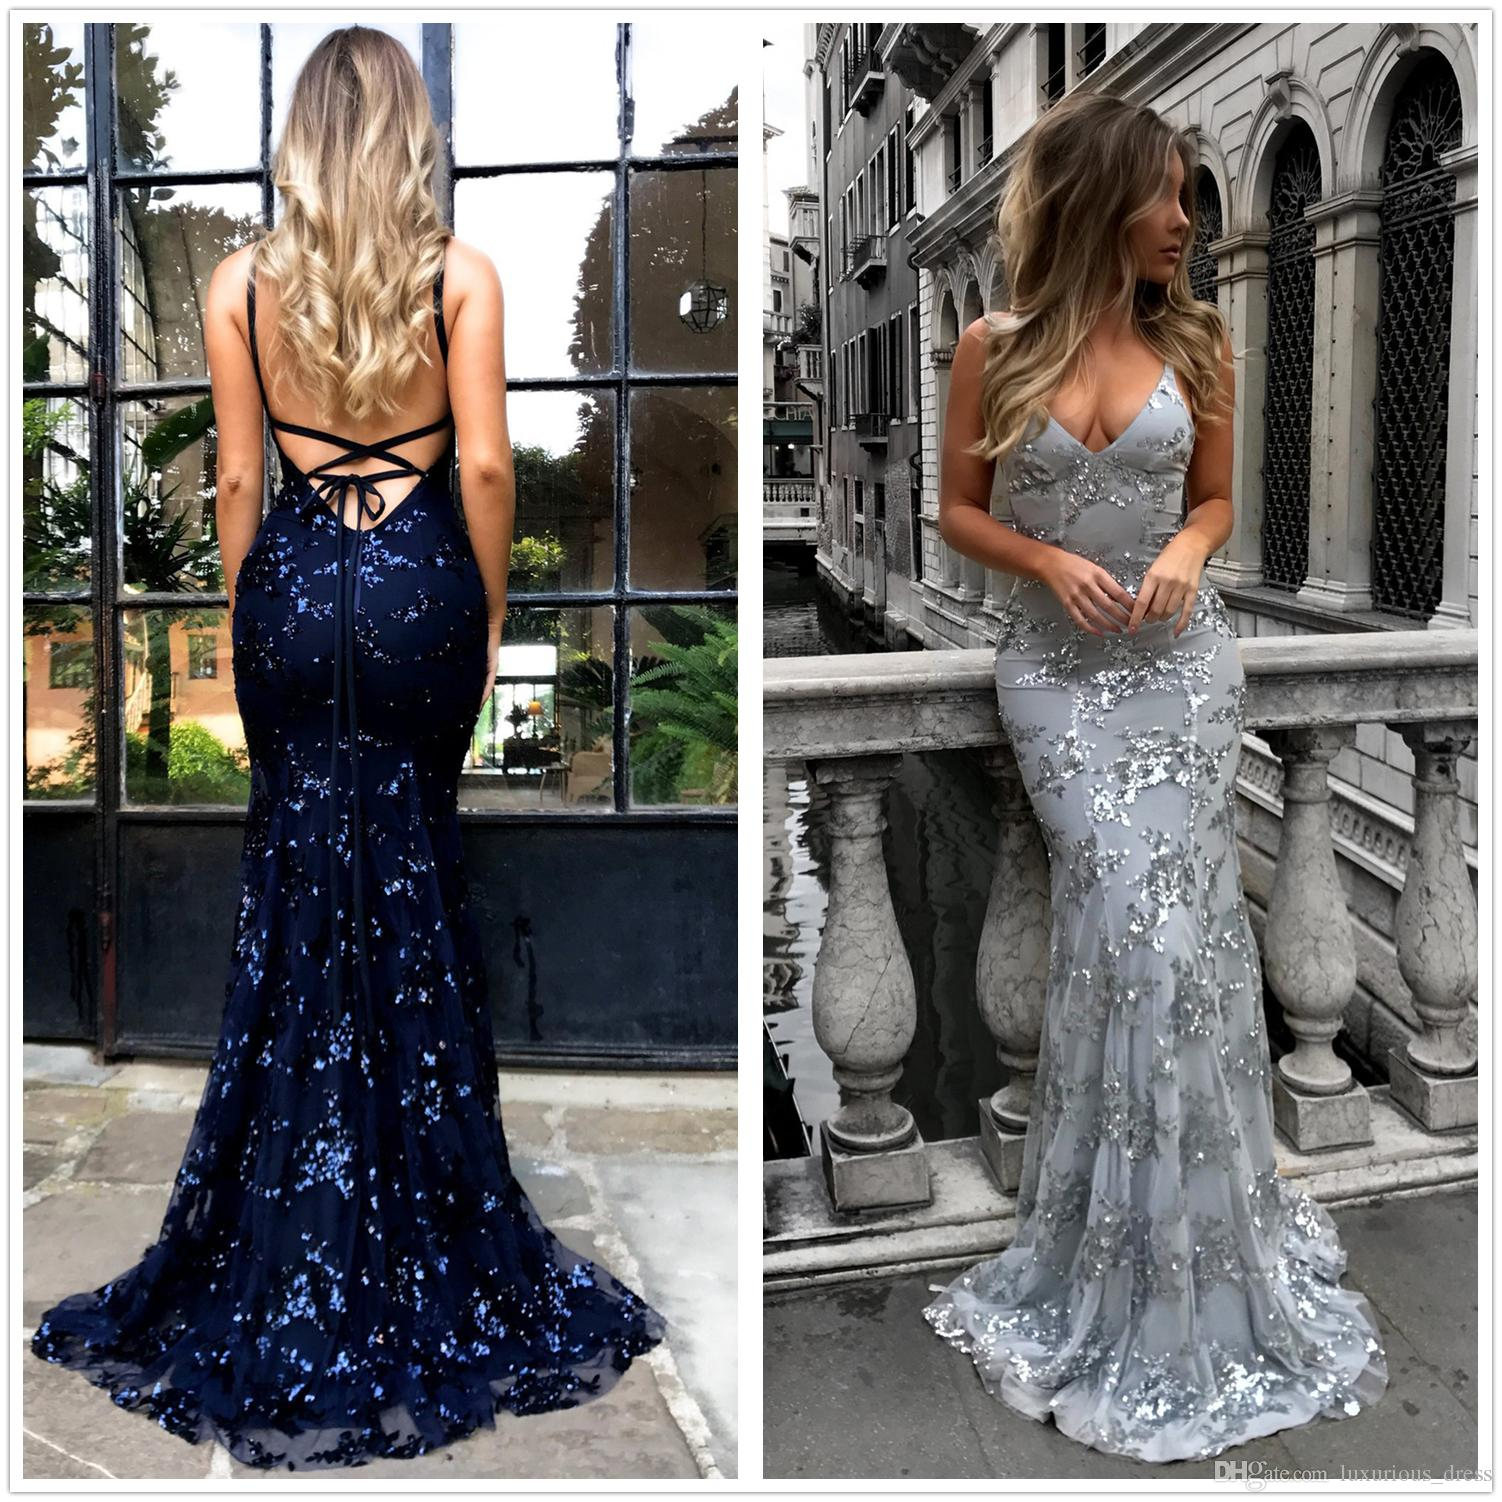 Silver/Gold/Burgundy Dark Navy Sexy 2019 Mermaid Prom Dresses Deep V Neck Spaghetti Straps Floor Length Backless Dresses Evening Party Wear